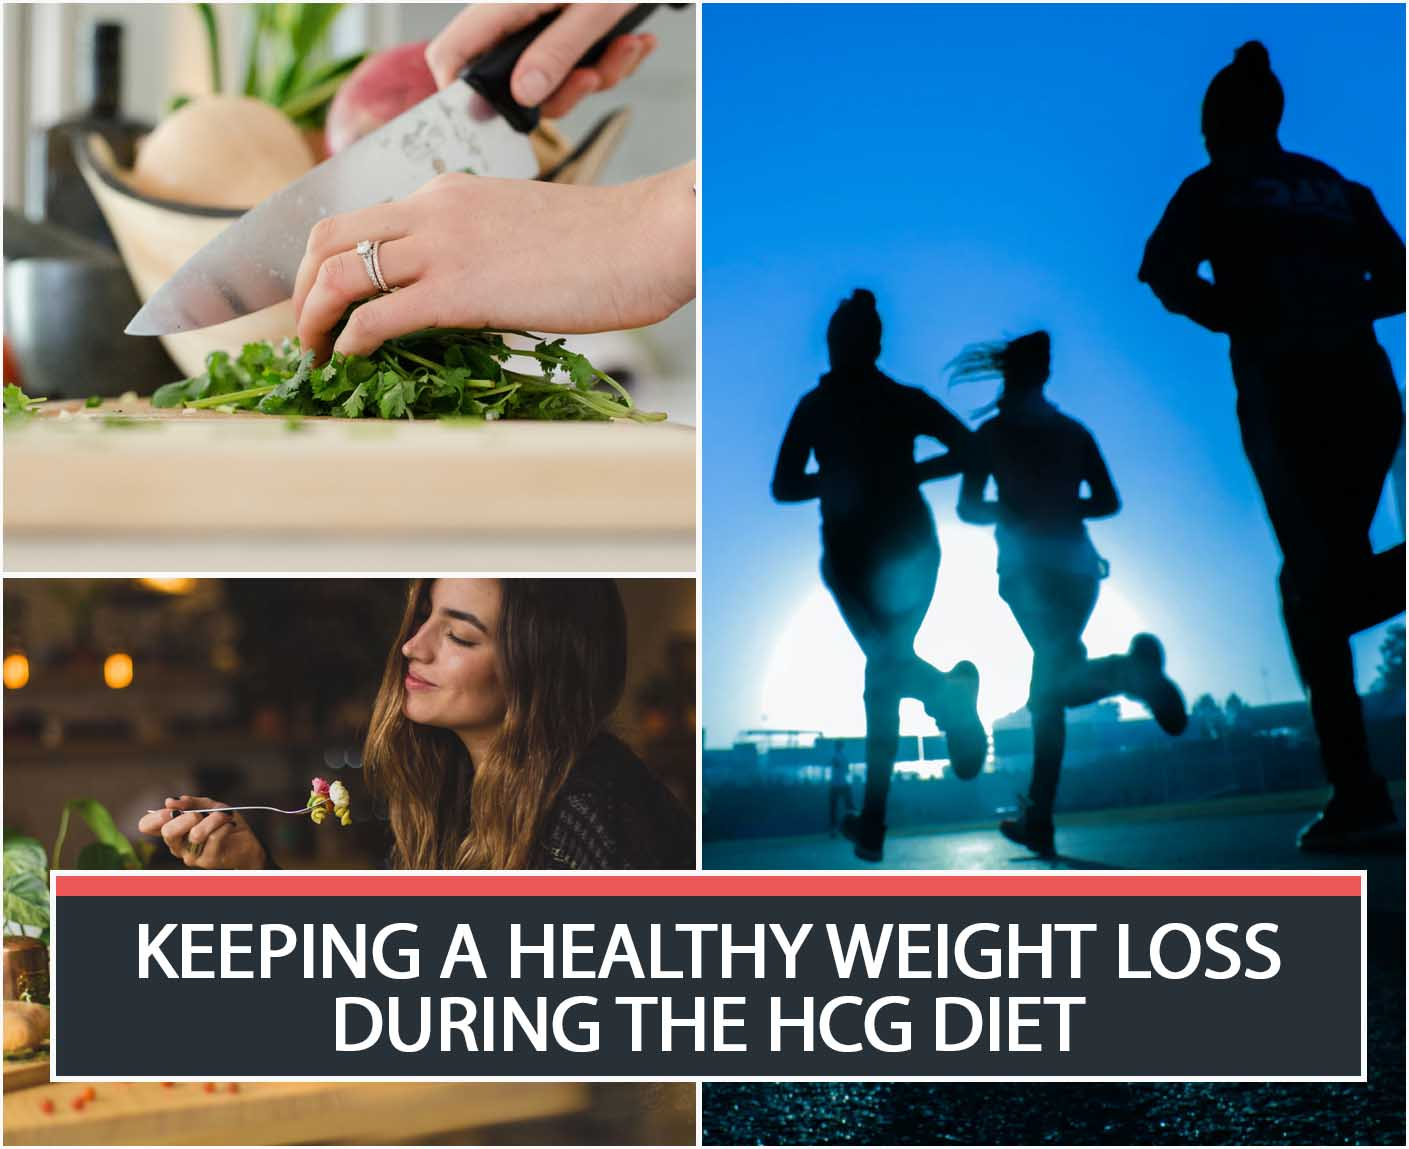 KEEPING A HEALTHY WEIGHT LOSS DURING THE HCG DIET